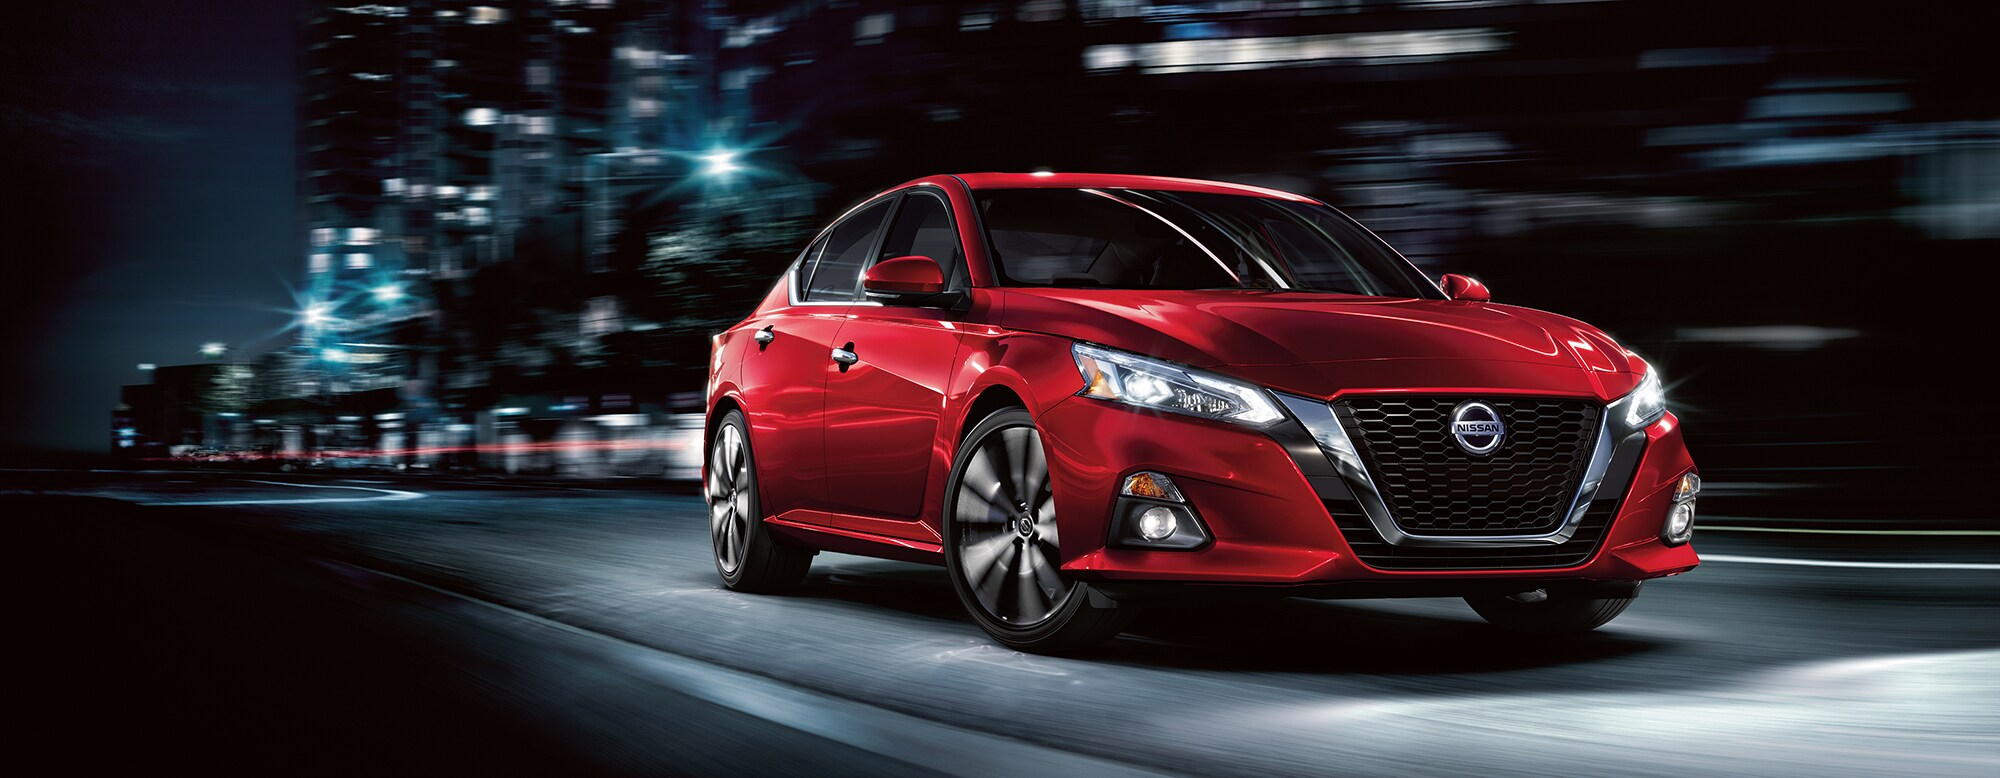 Nissan Altima Exterior Vehicle Features